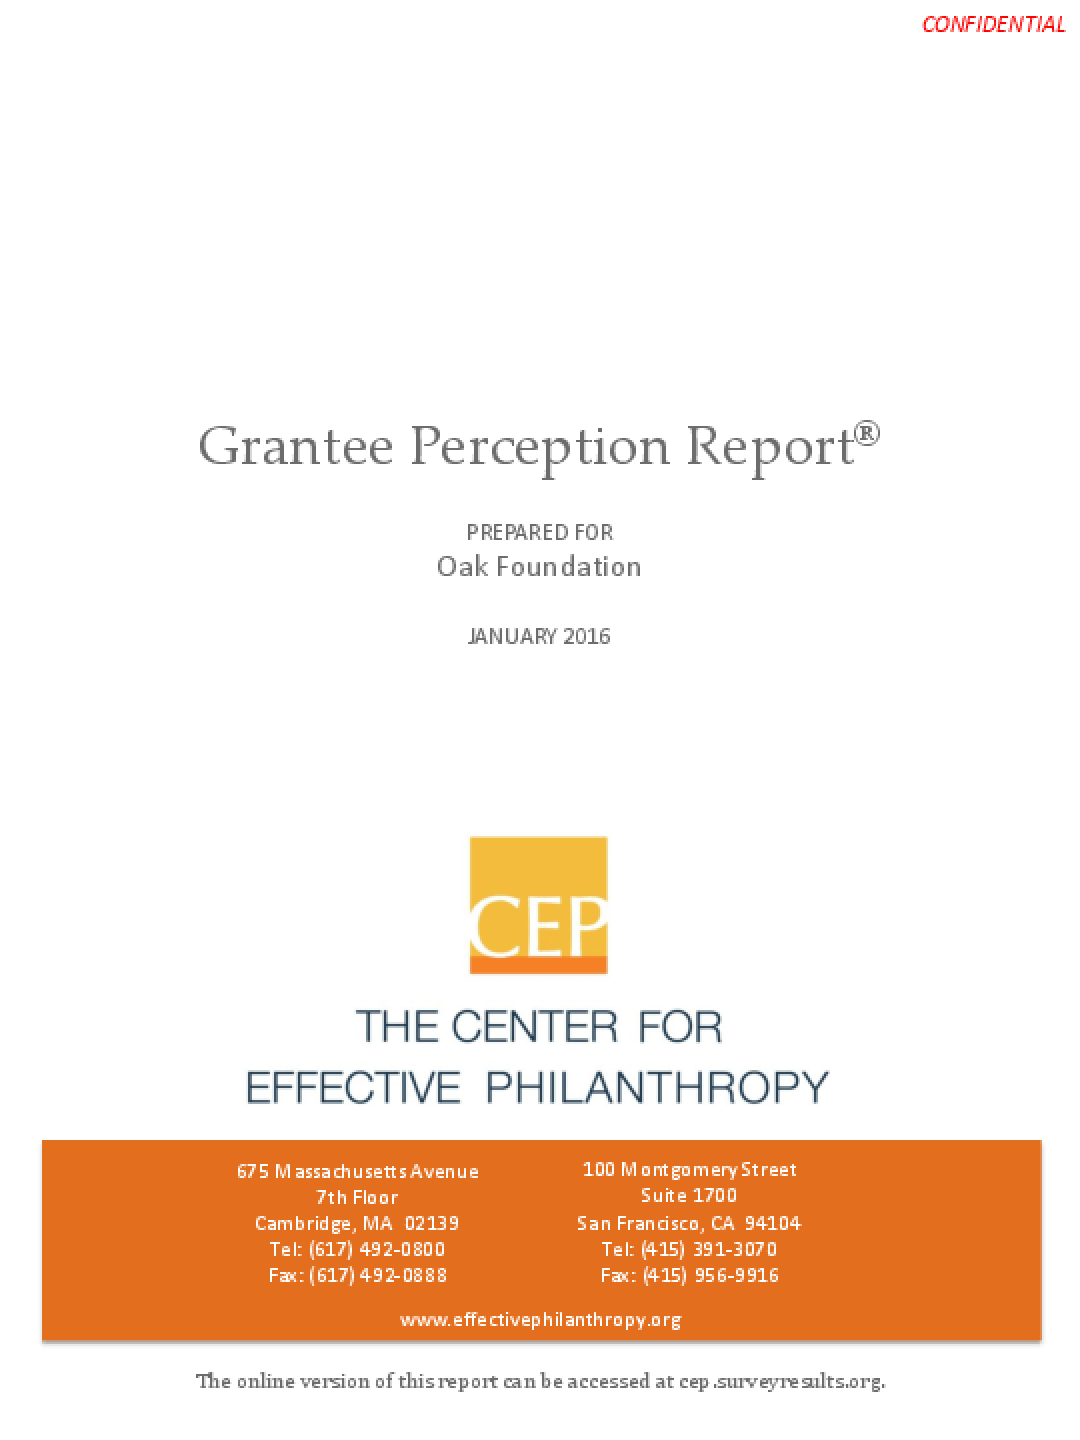 Grantee Perception Report January 2016